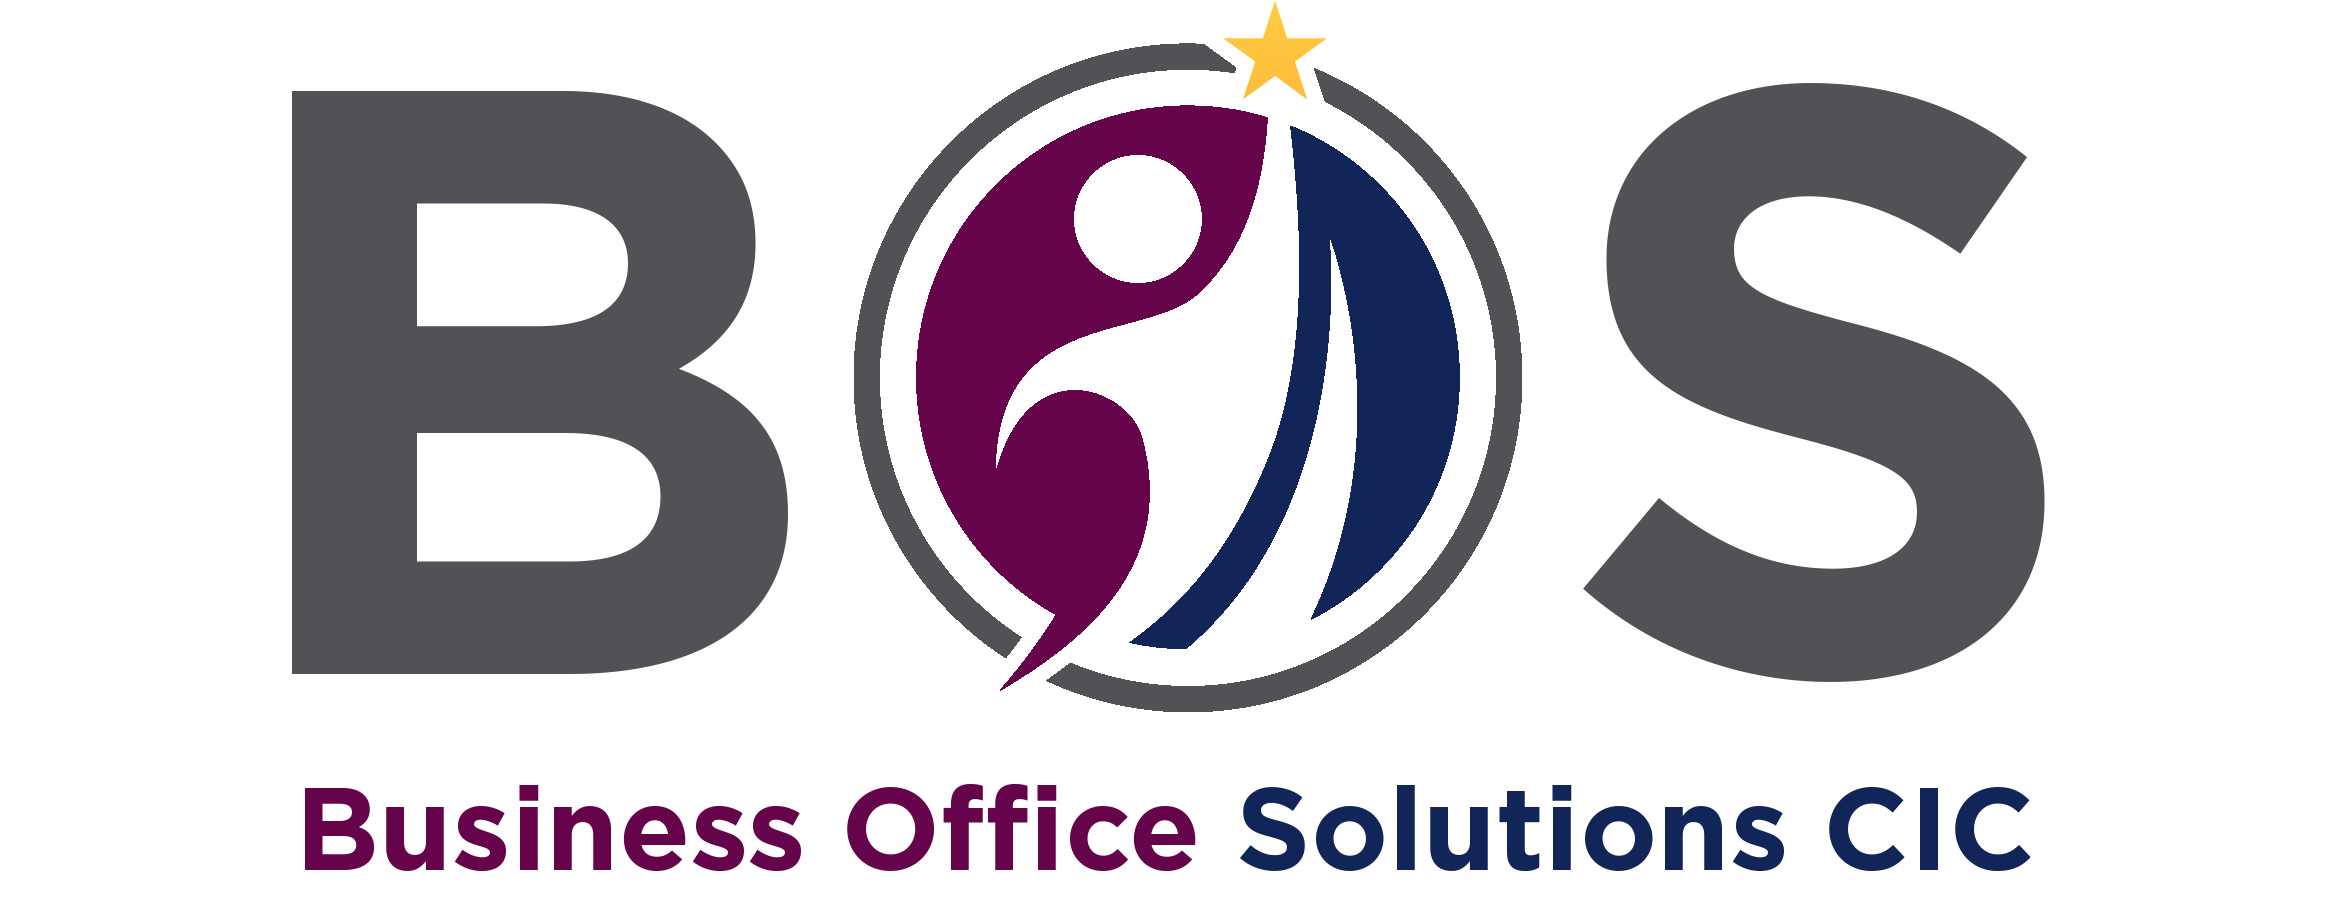 BOS | Business Office Solutions CIC